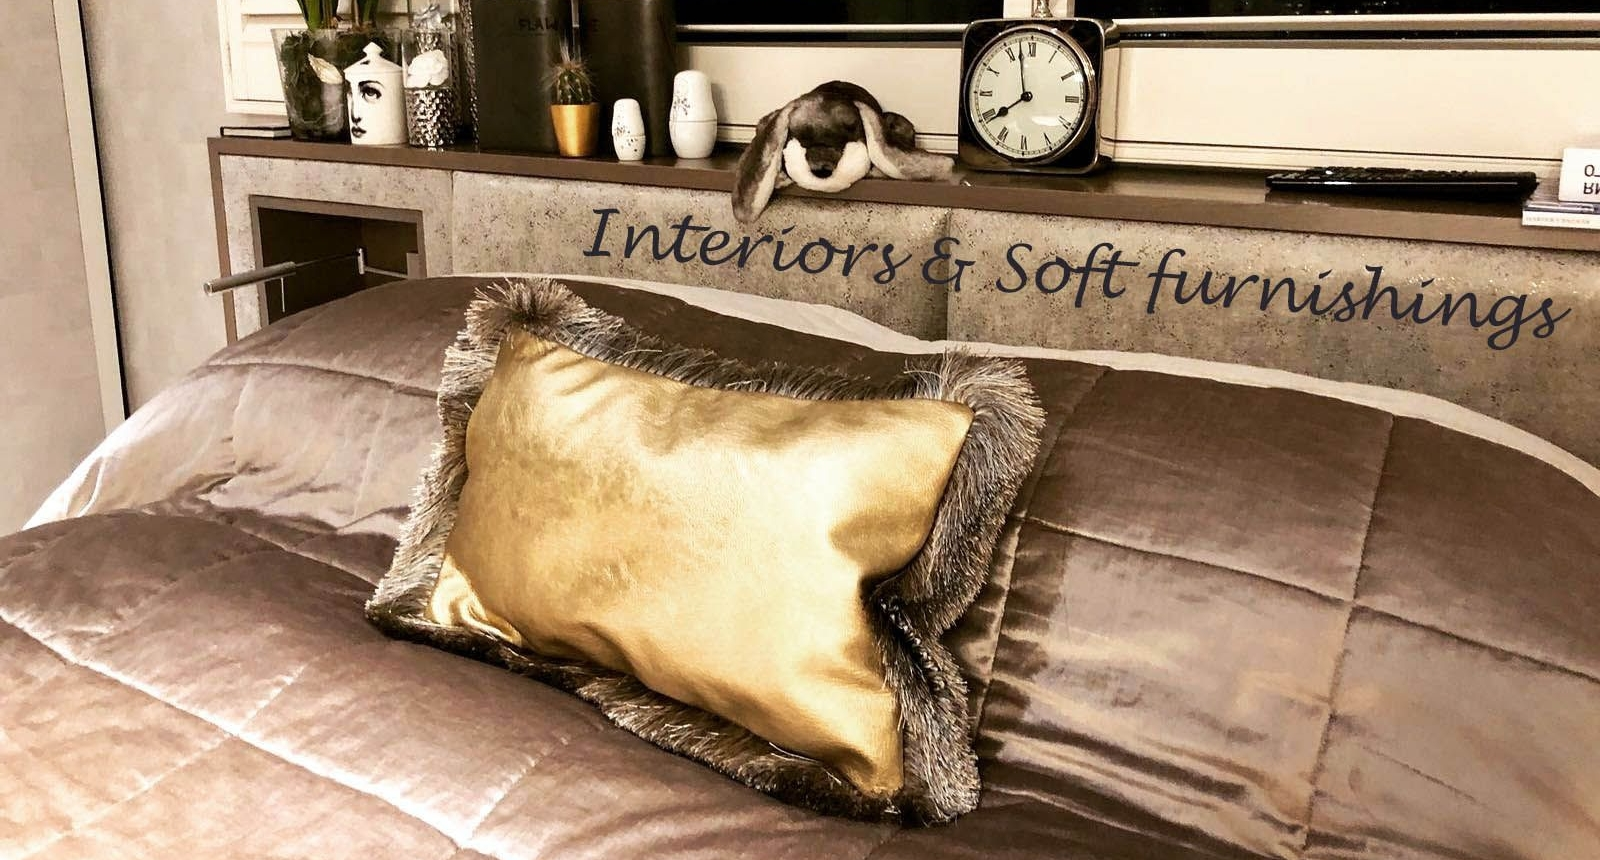 Interiors and Soft Furnishings